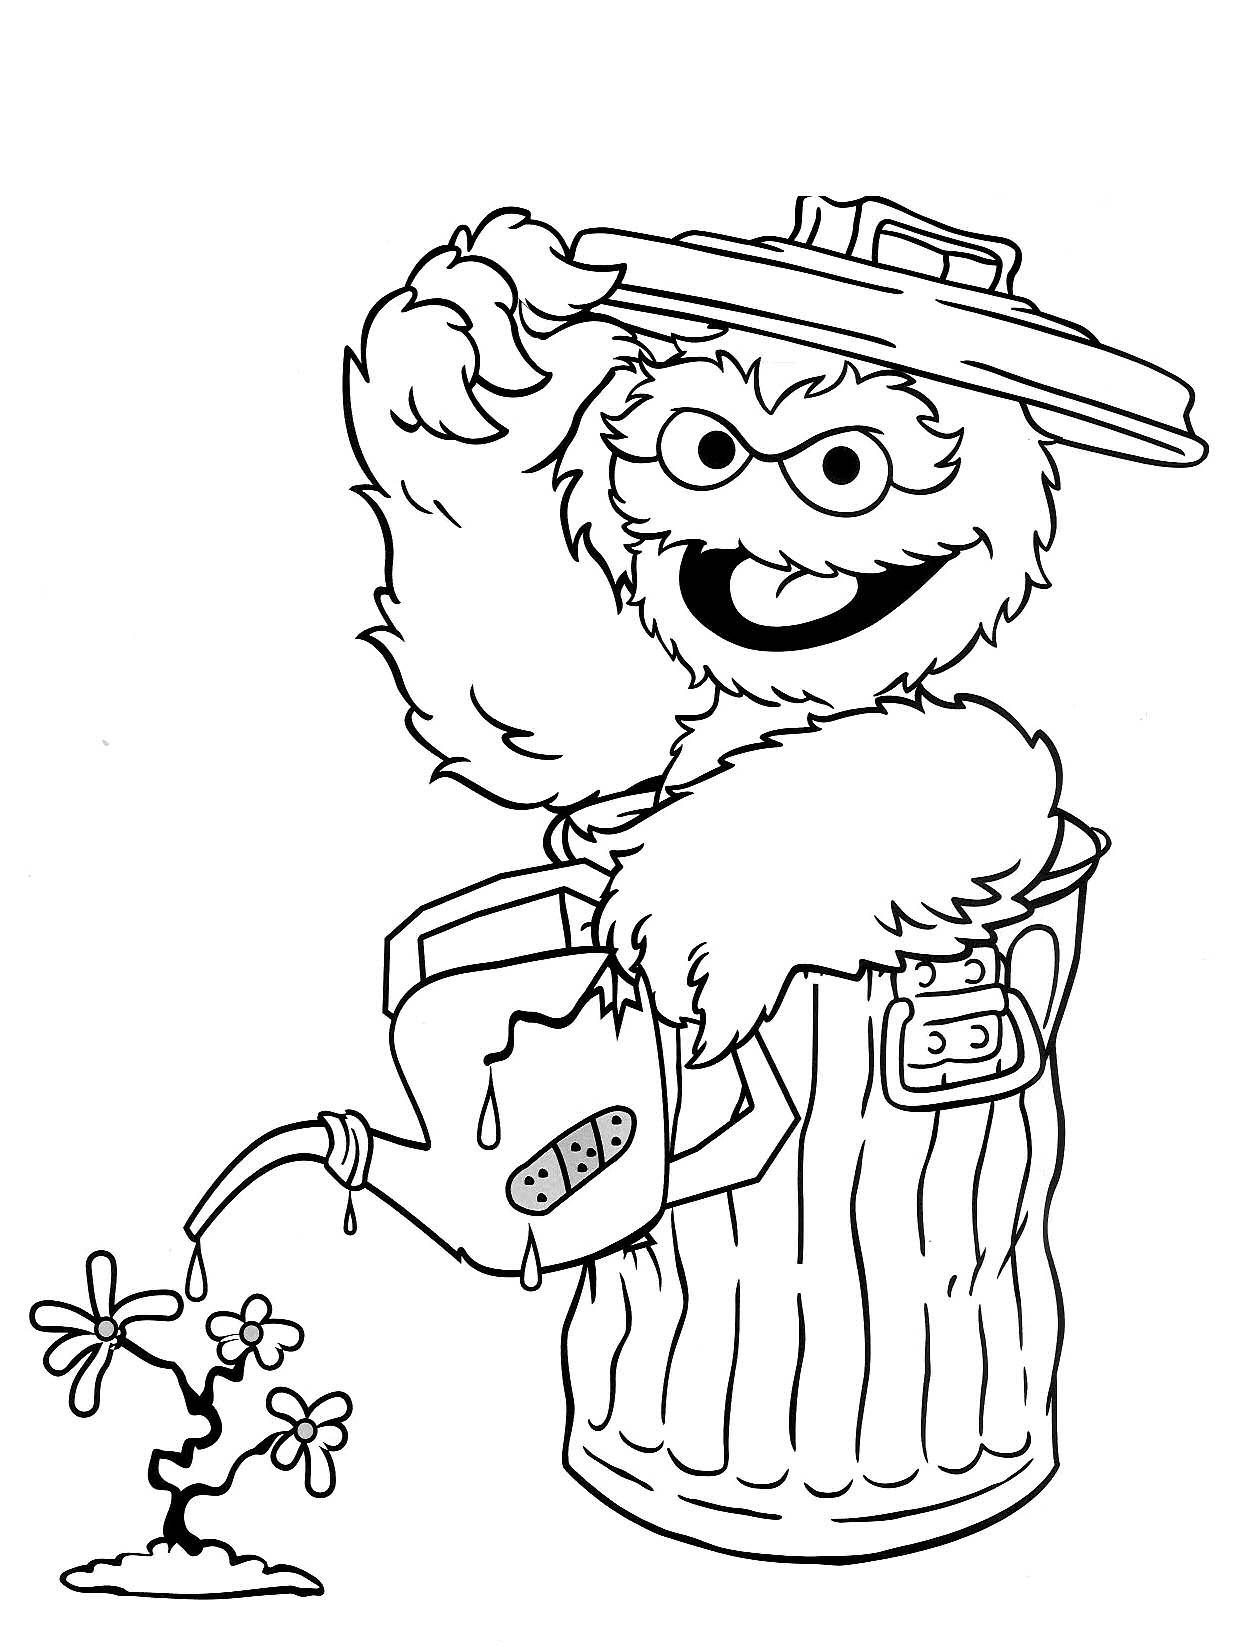 Elmo Coloring Pages | 360ColoringPages